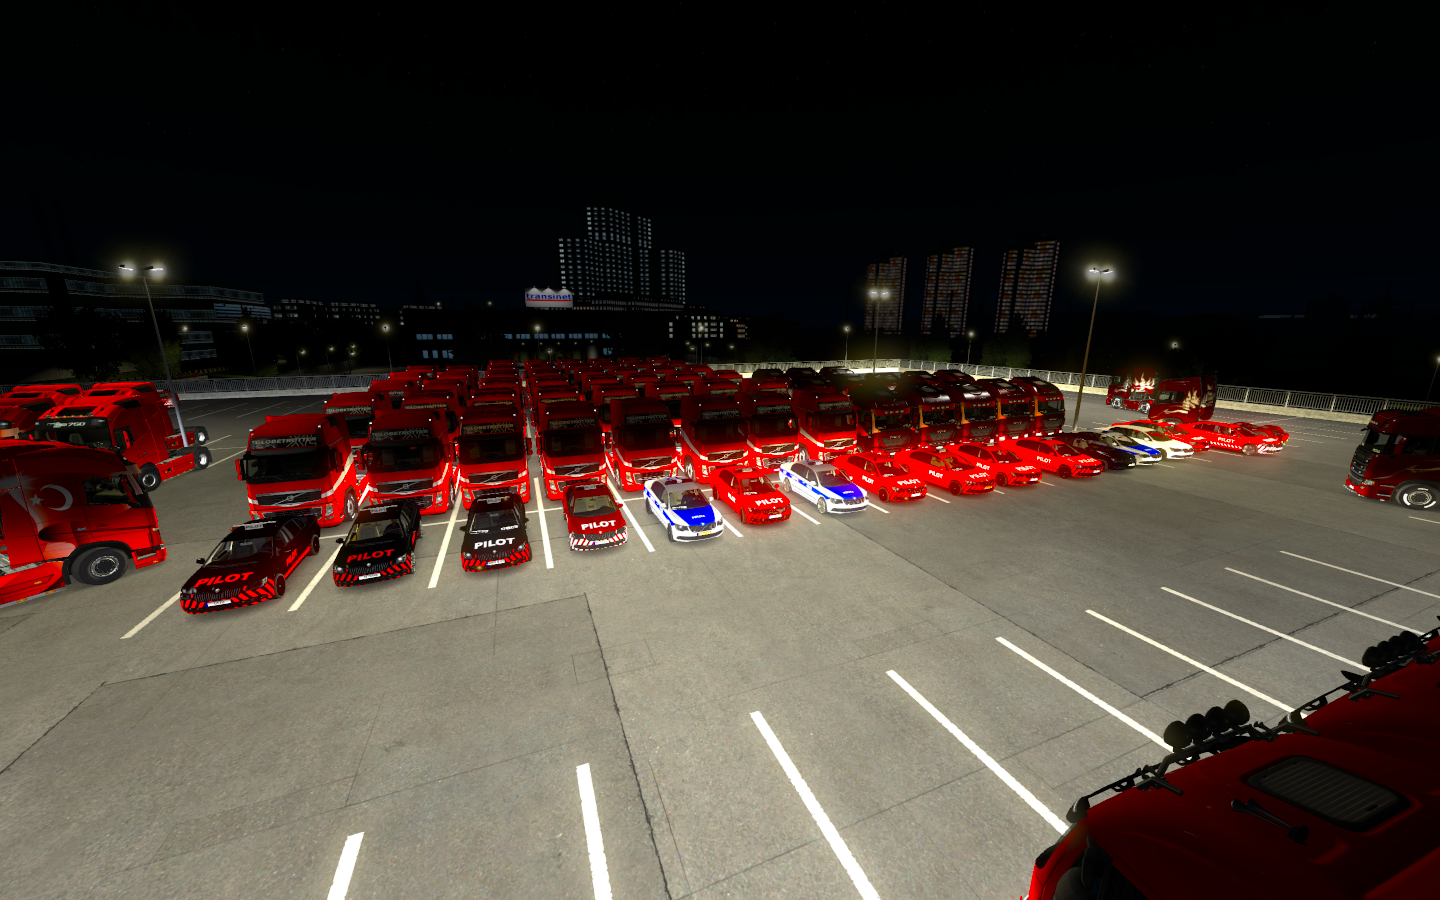 ets2_20190315_223135_00.png